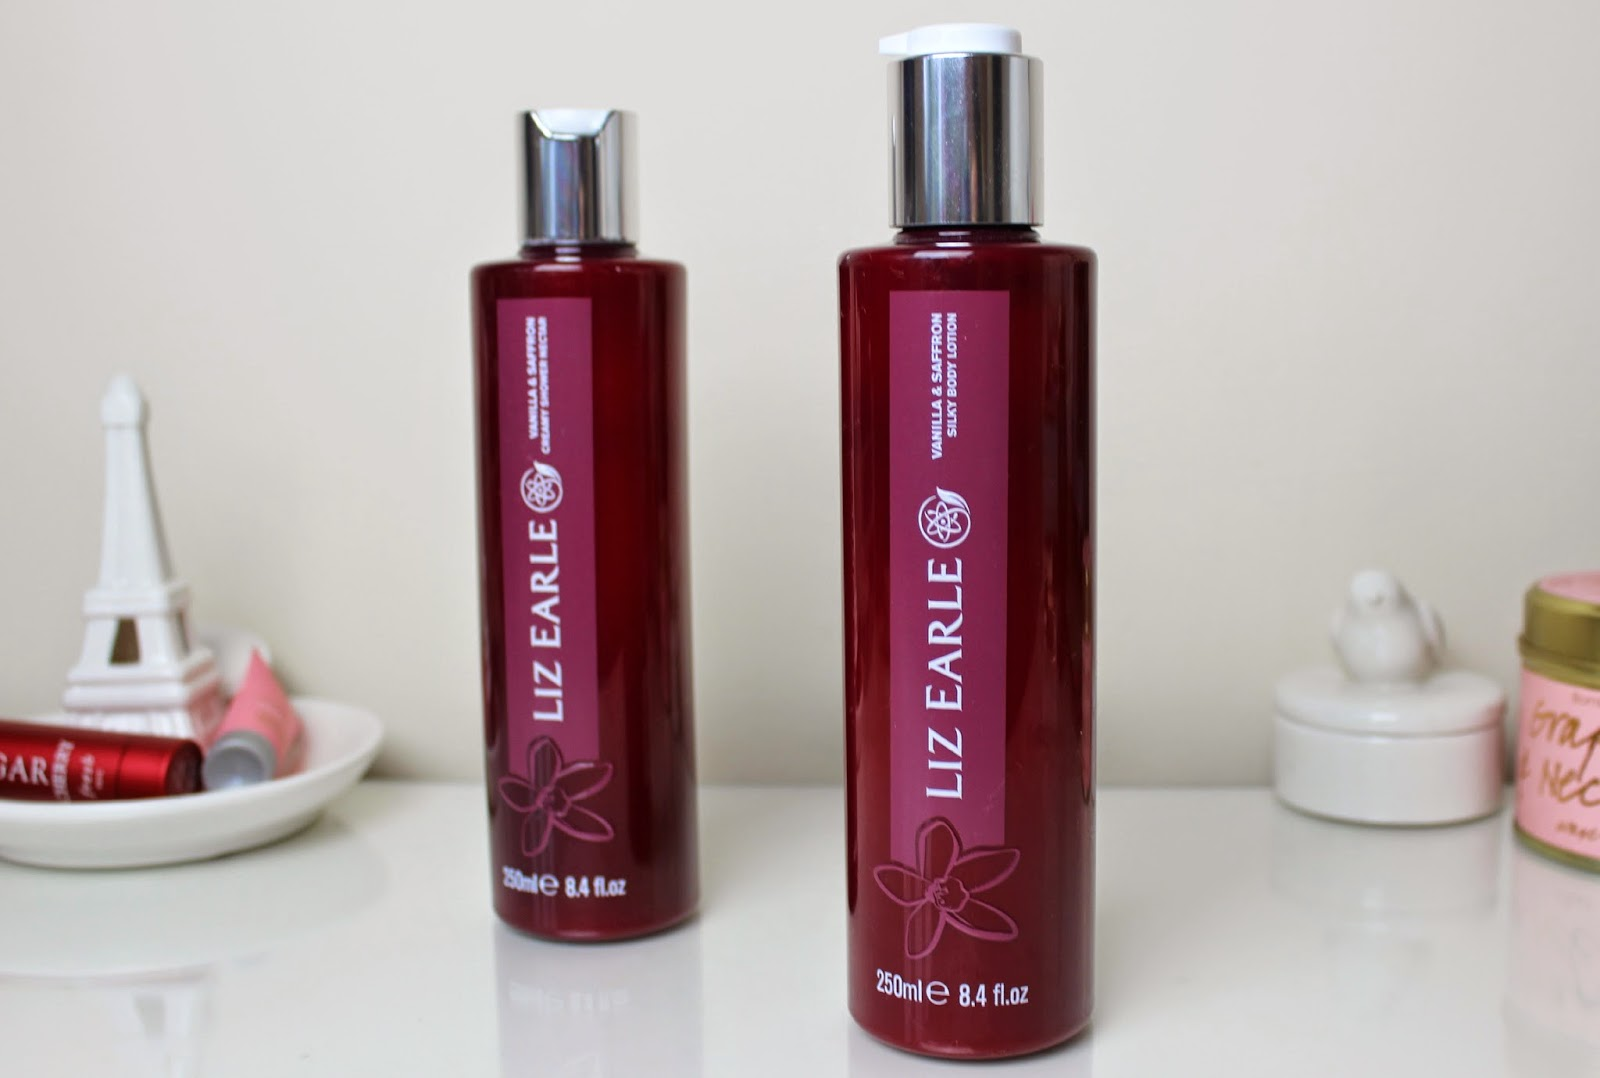 A picture of Liz Earle Vanilla & Saffron Shower Nectar & Silky Body Lotion